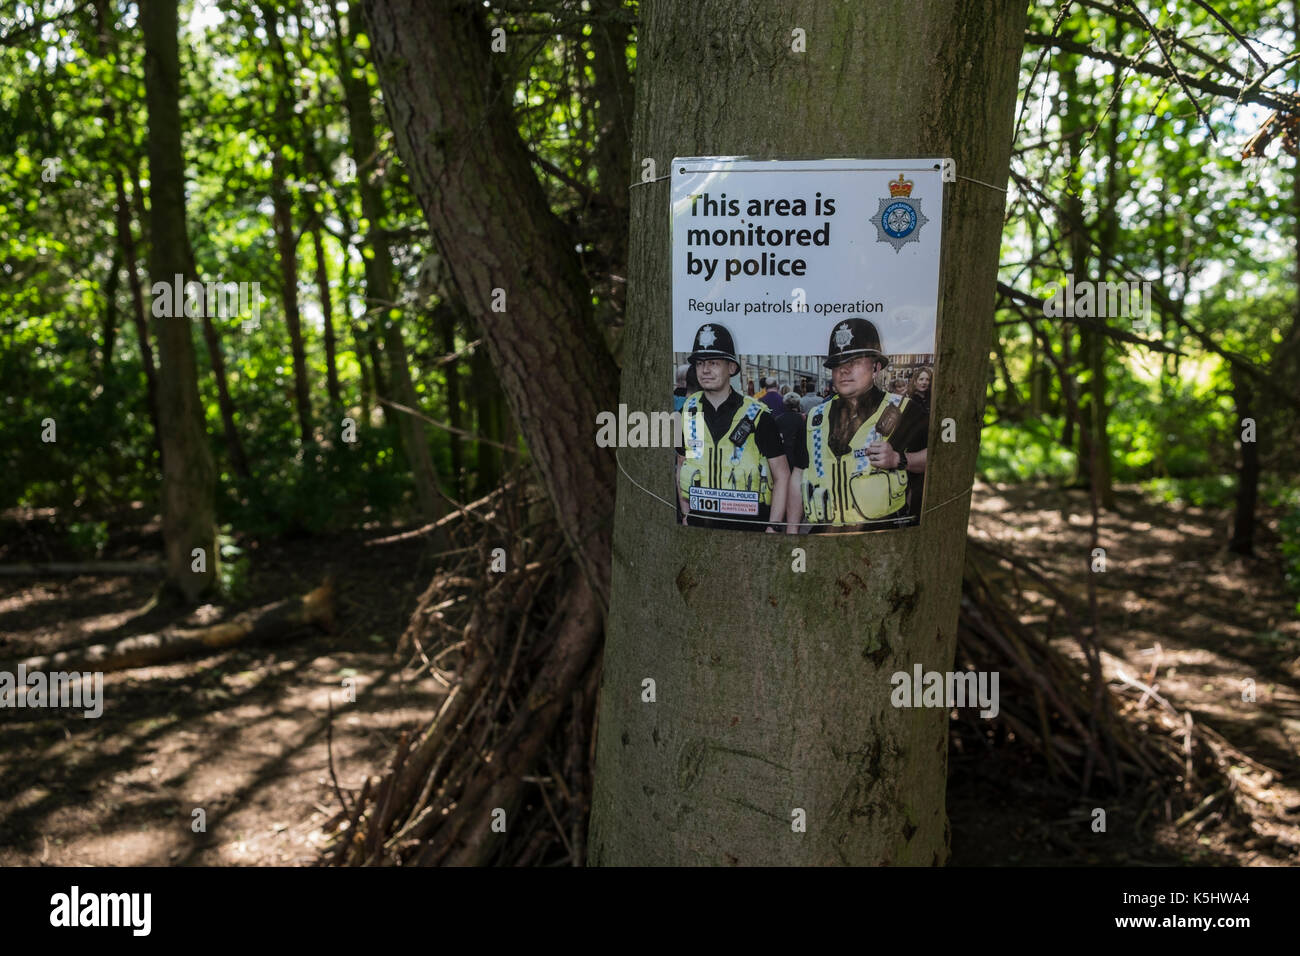 Poster advising of regular police patrols in a wooded area in North Yorkshire, England, UK - Stock Image